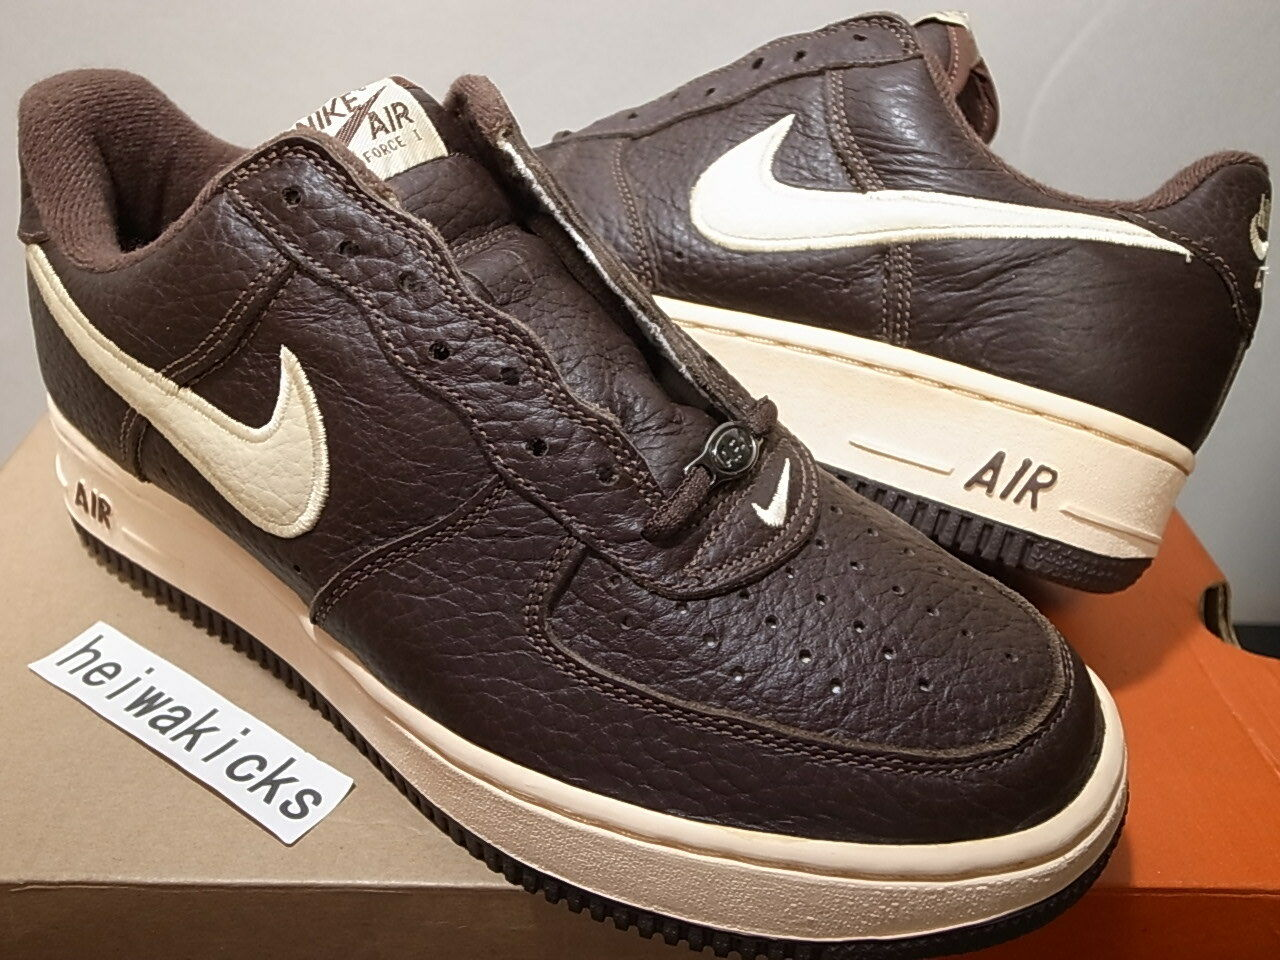 2018 NIKE AIR Exclusive FORCE 1 EU JP Exclusive AIR Chocolate/Light Straw 630033211 Talla 9 78c439